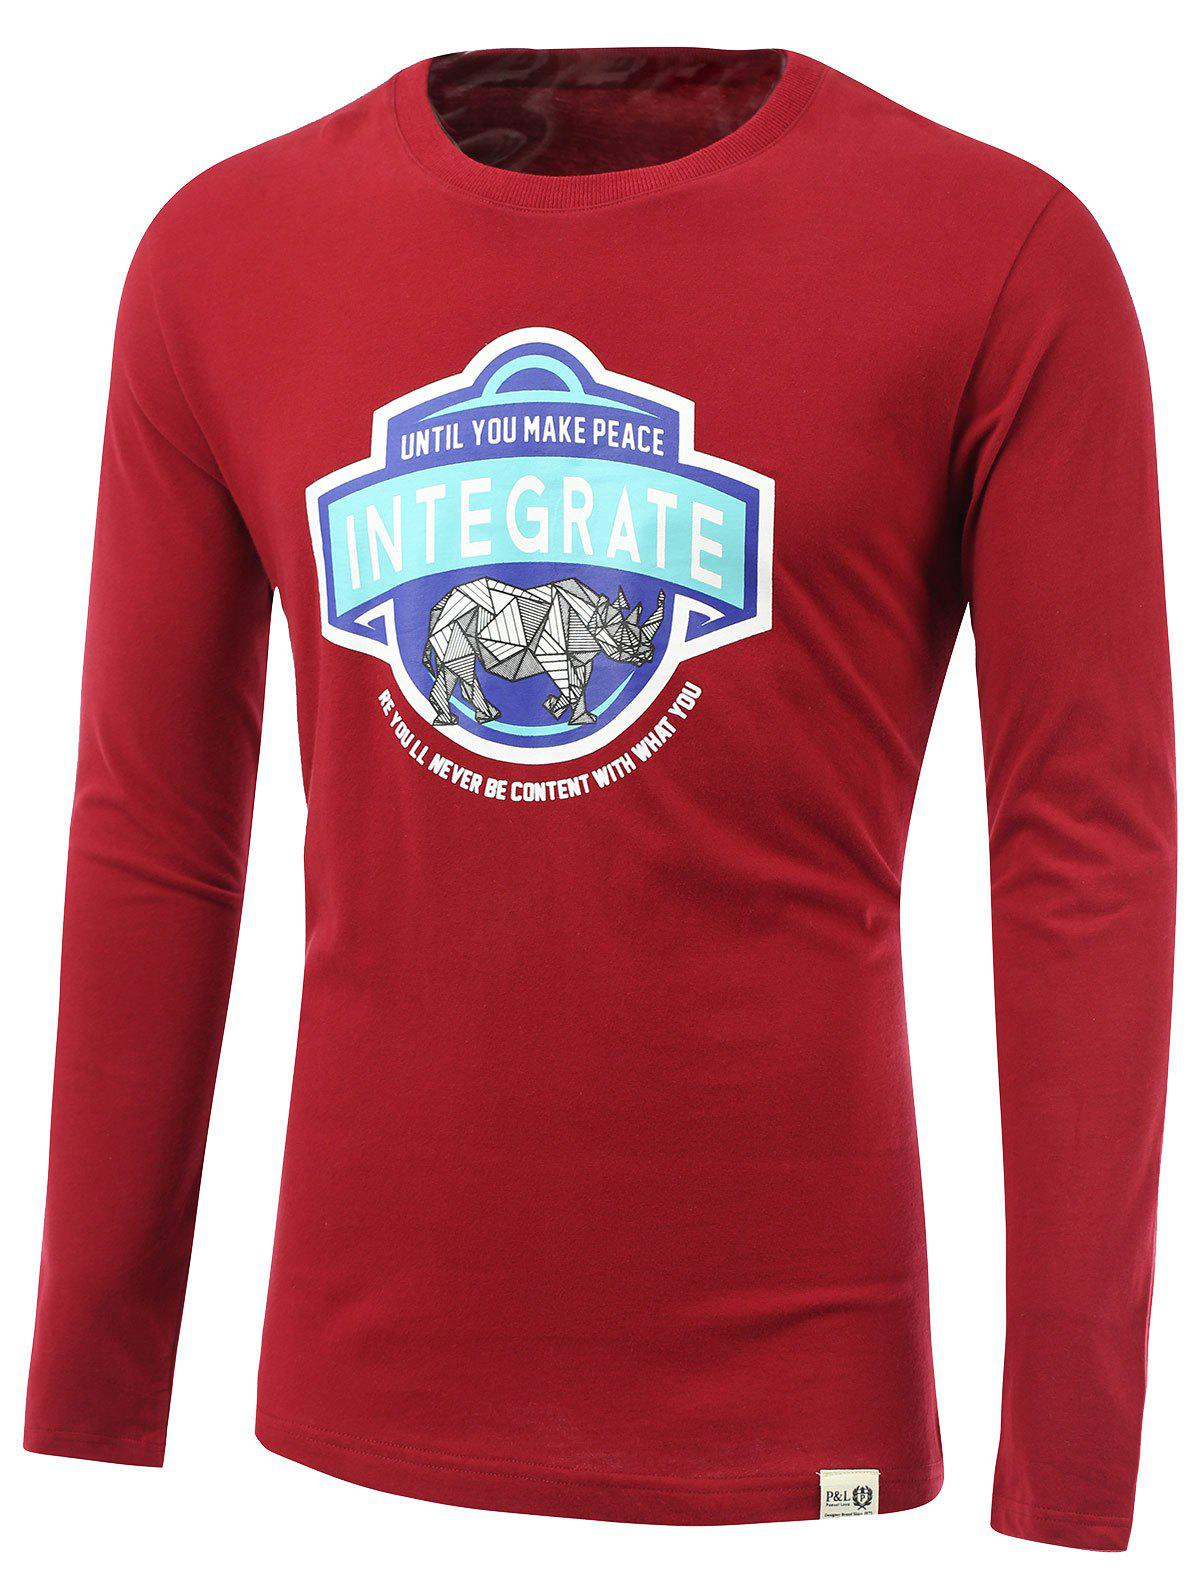 Rhinoceros and Letters Print Round Neck Long Sleeve T-Shirt